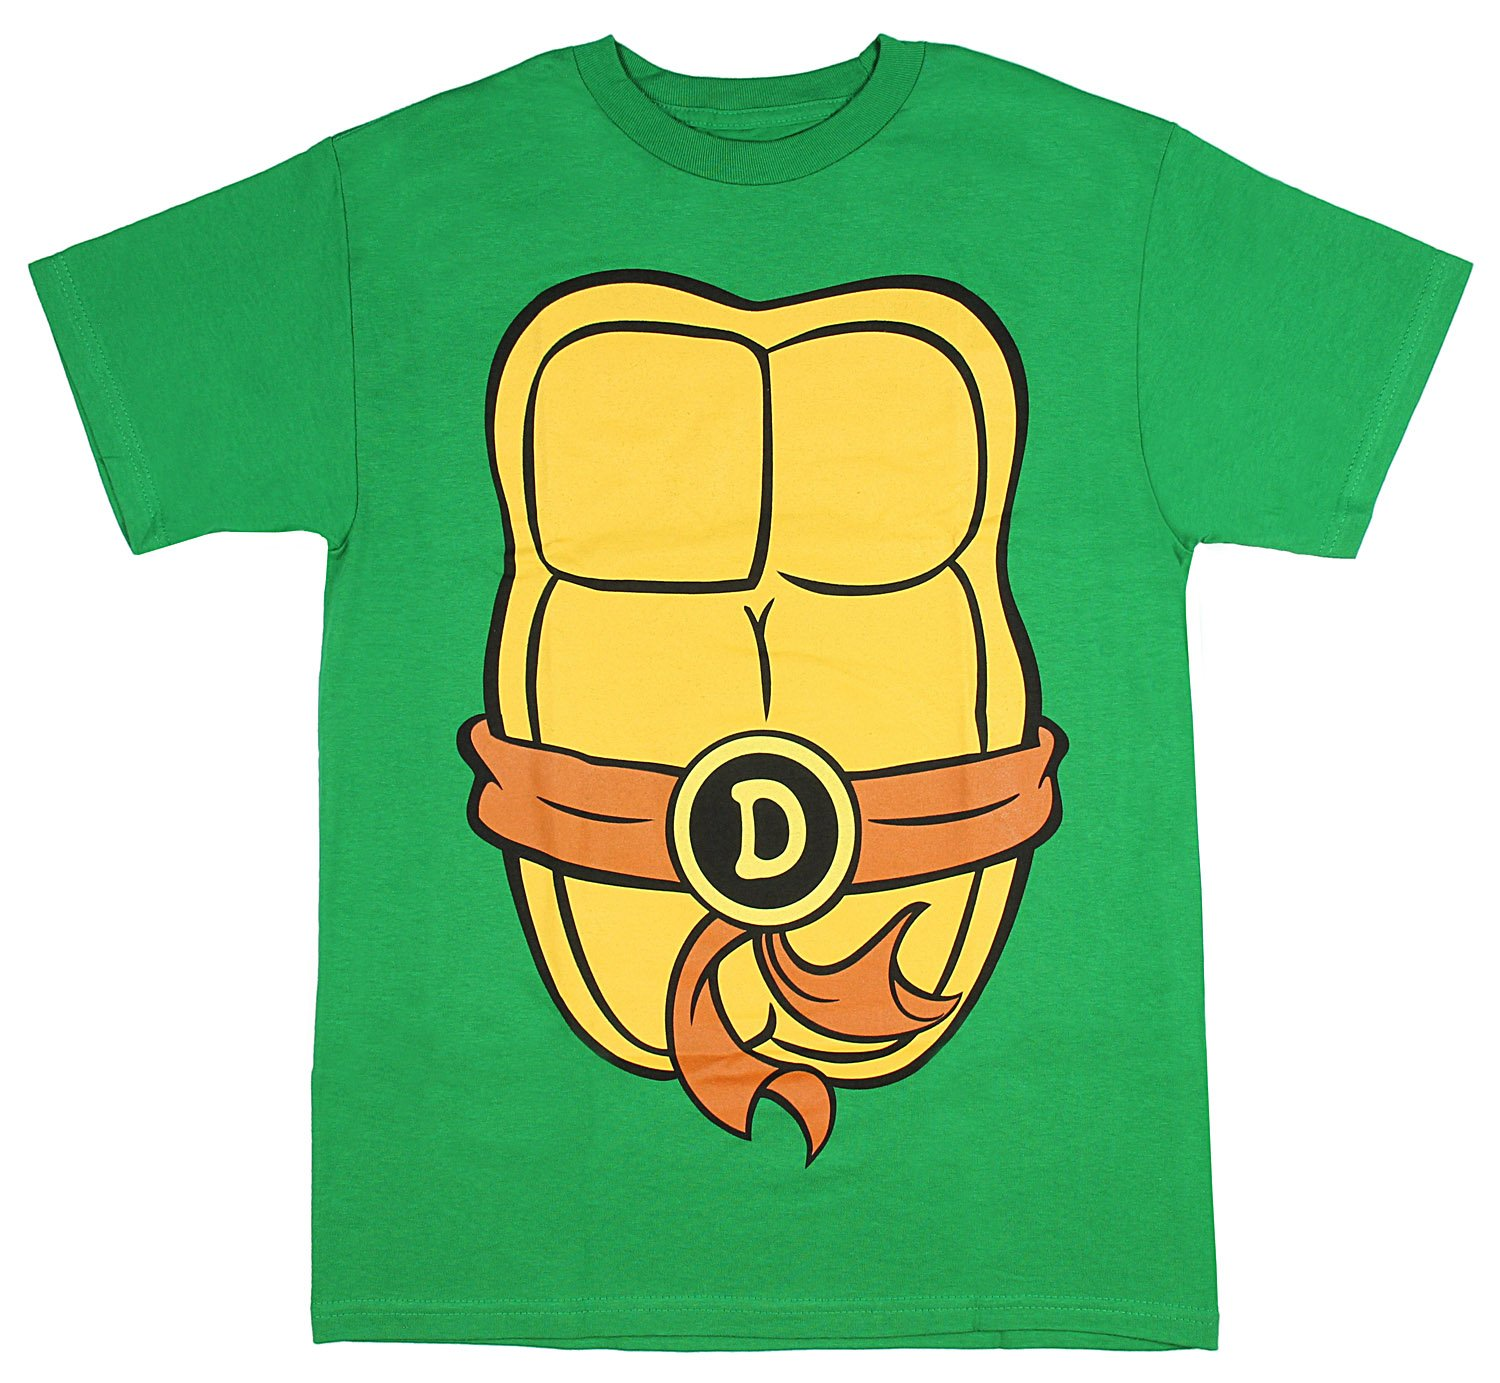 Teenage Mutant Ninja Turtles Adult Costume T-Shirt (Don Brown, Medium)